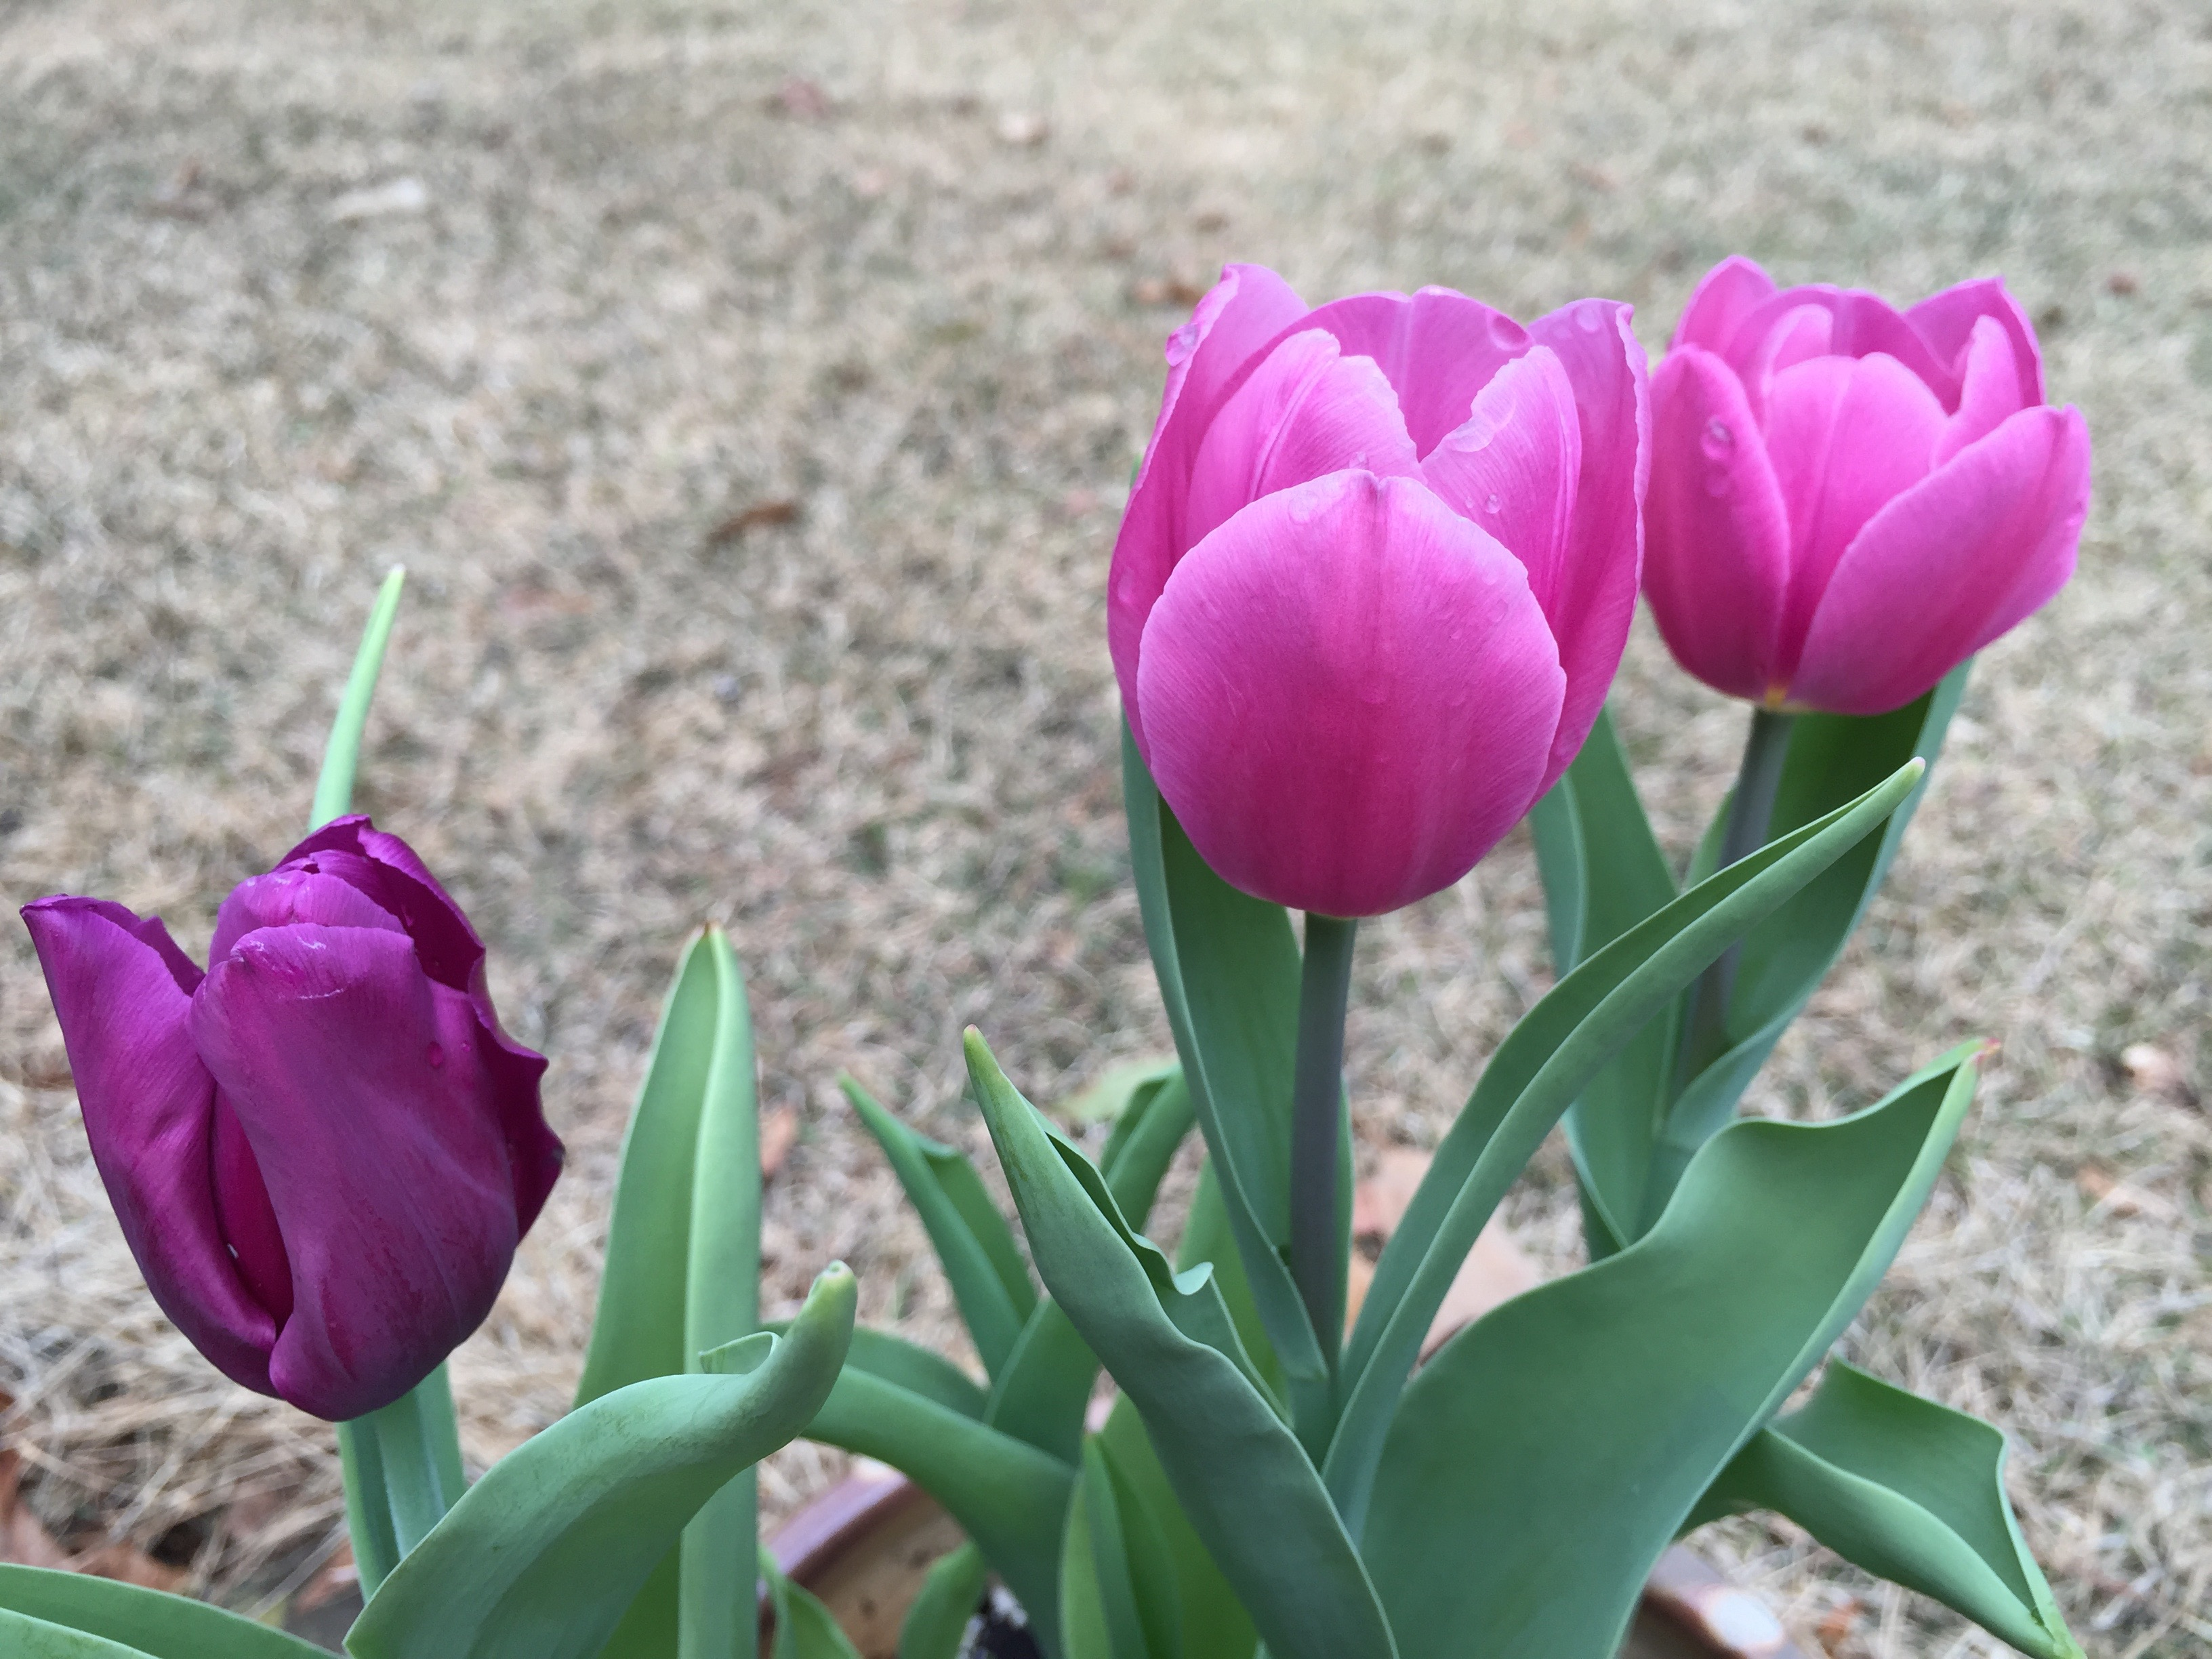 tulips_planted_in_fall.jpg